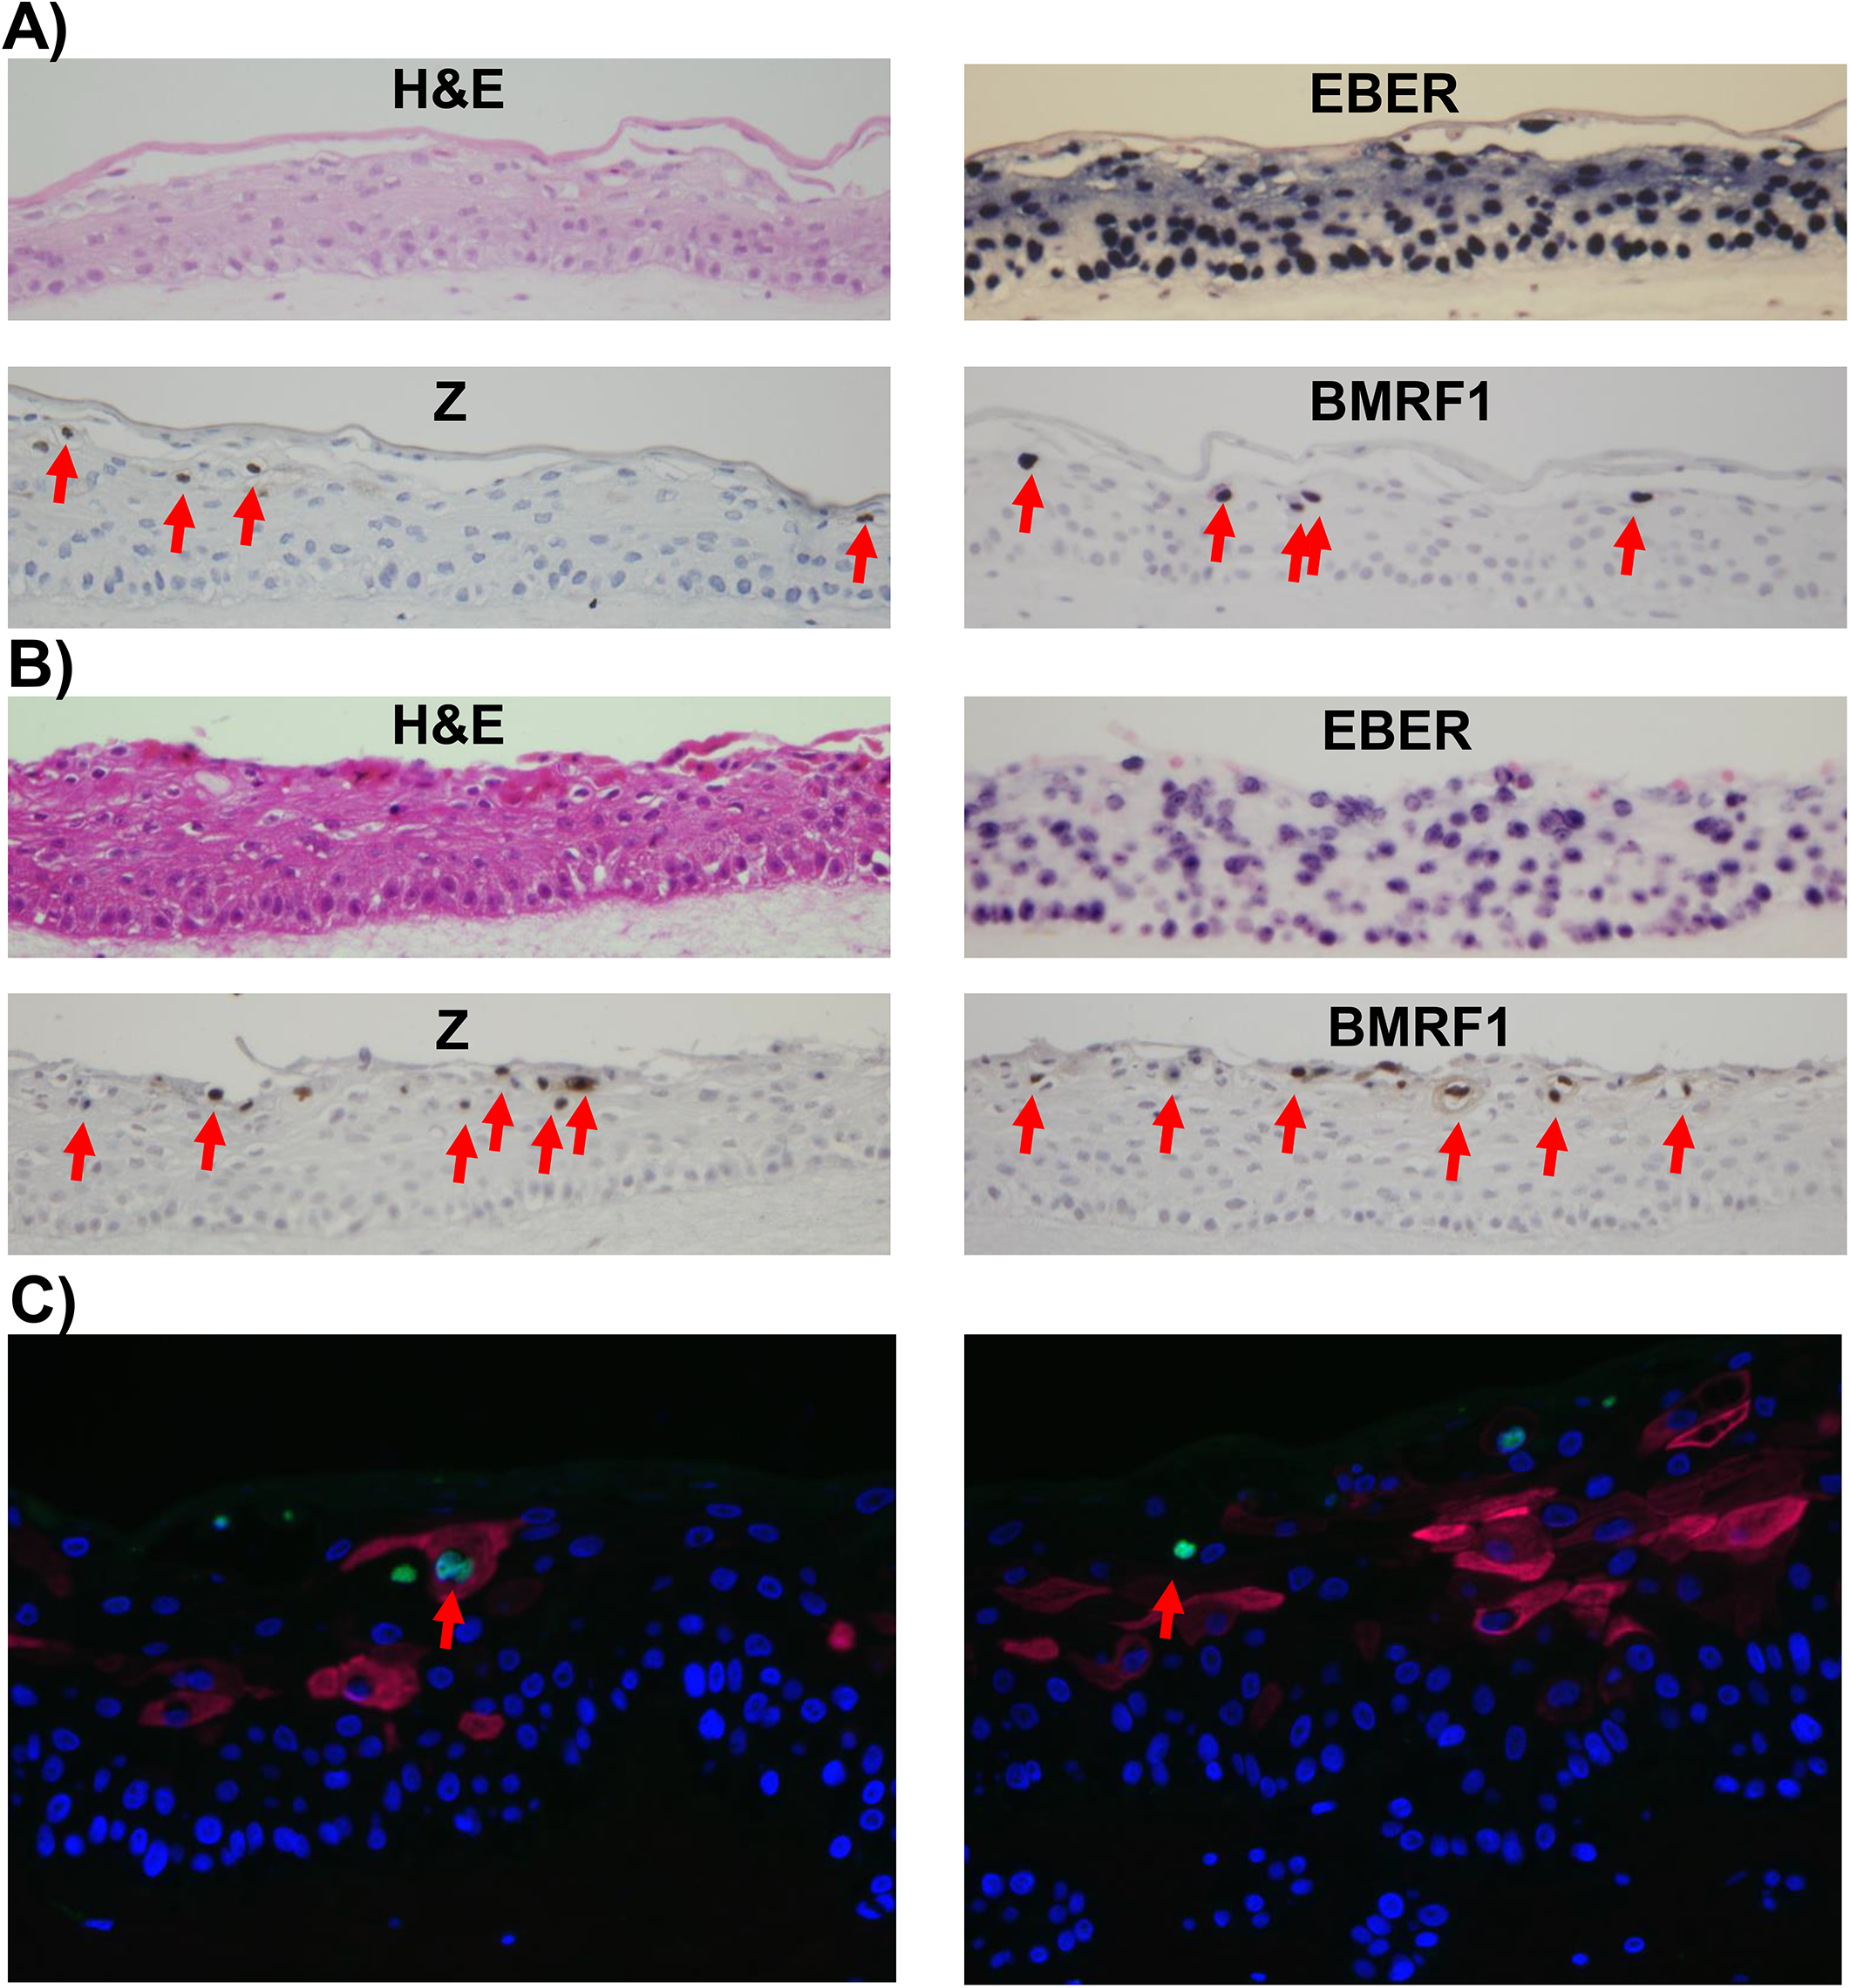 Lytic EBV protein expression in NOKs-Akata cells is restricted to the more differentiated cell layers.